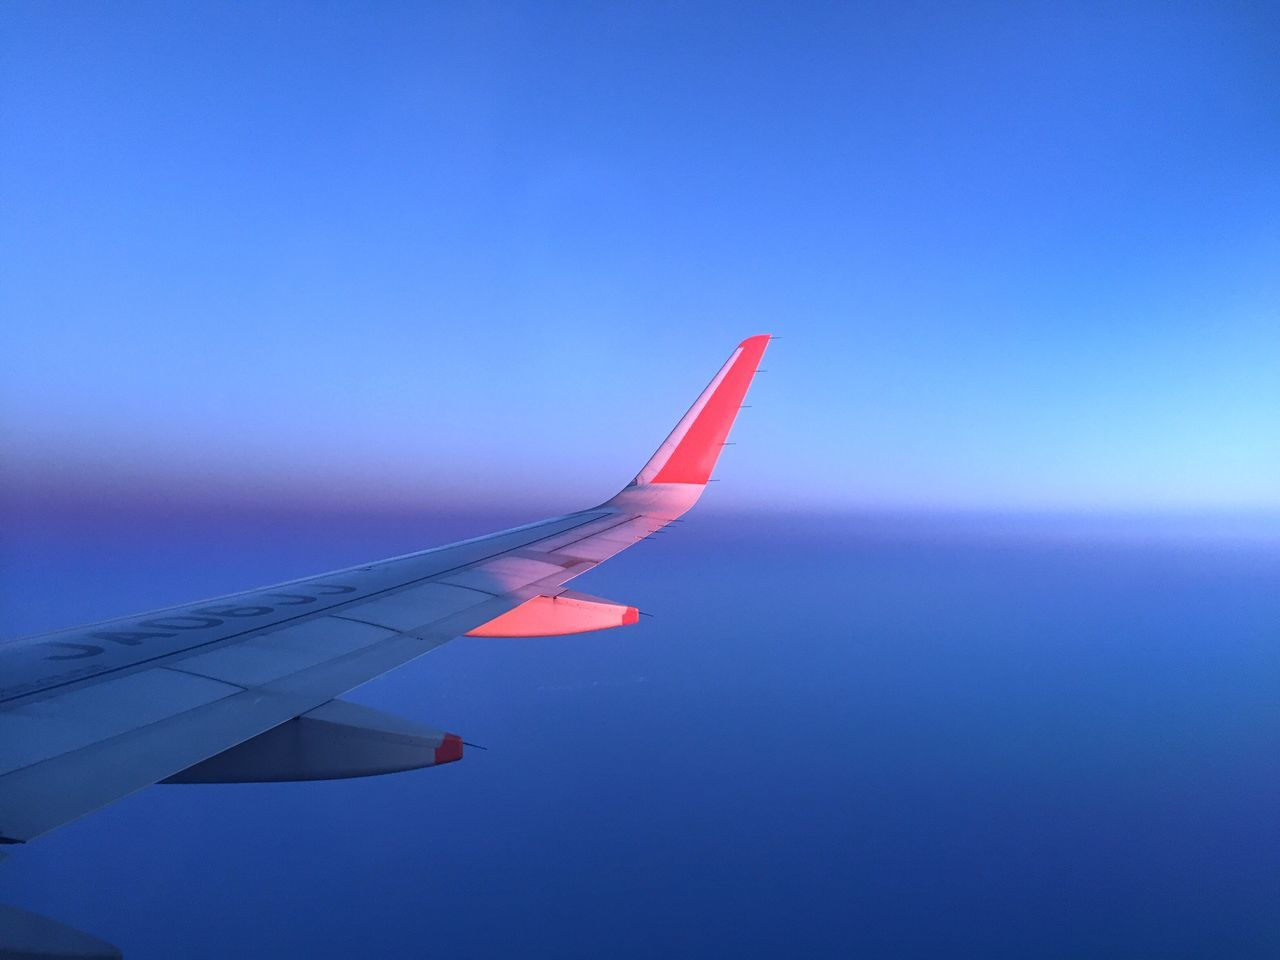 Flying Hues. Airplane Journey Blue Transportation Airplane Wing Flying Air Vehicle Travel Aircraft Wing Sky Nature Mid-air Aerial View Day Outdoors Beauty In Nature Clear Sky Close-up